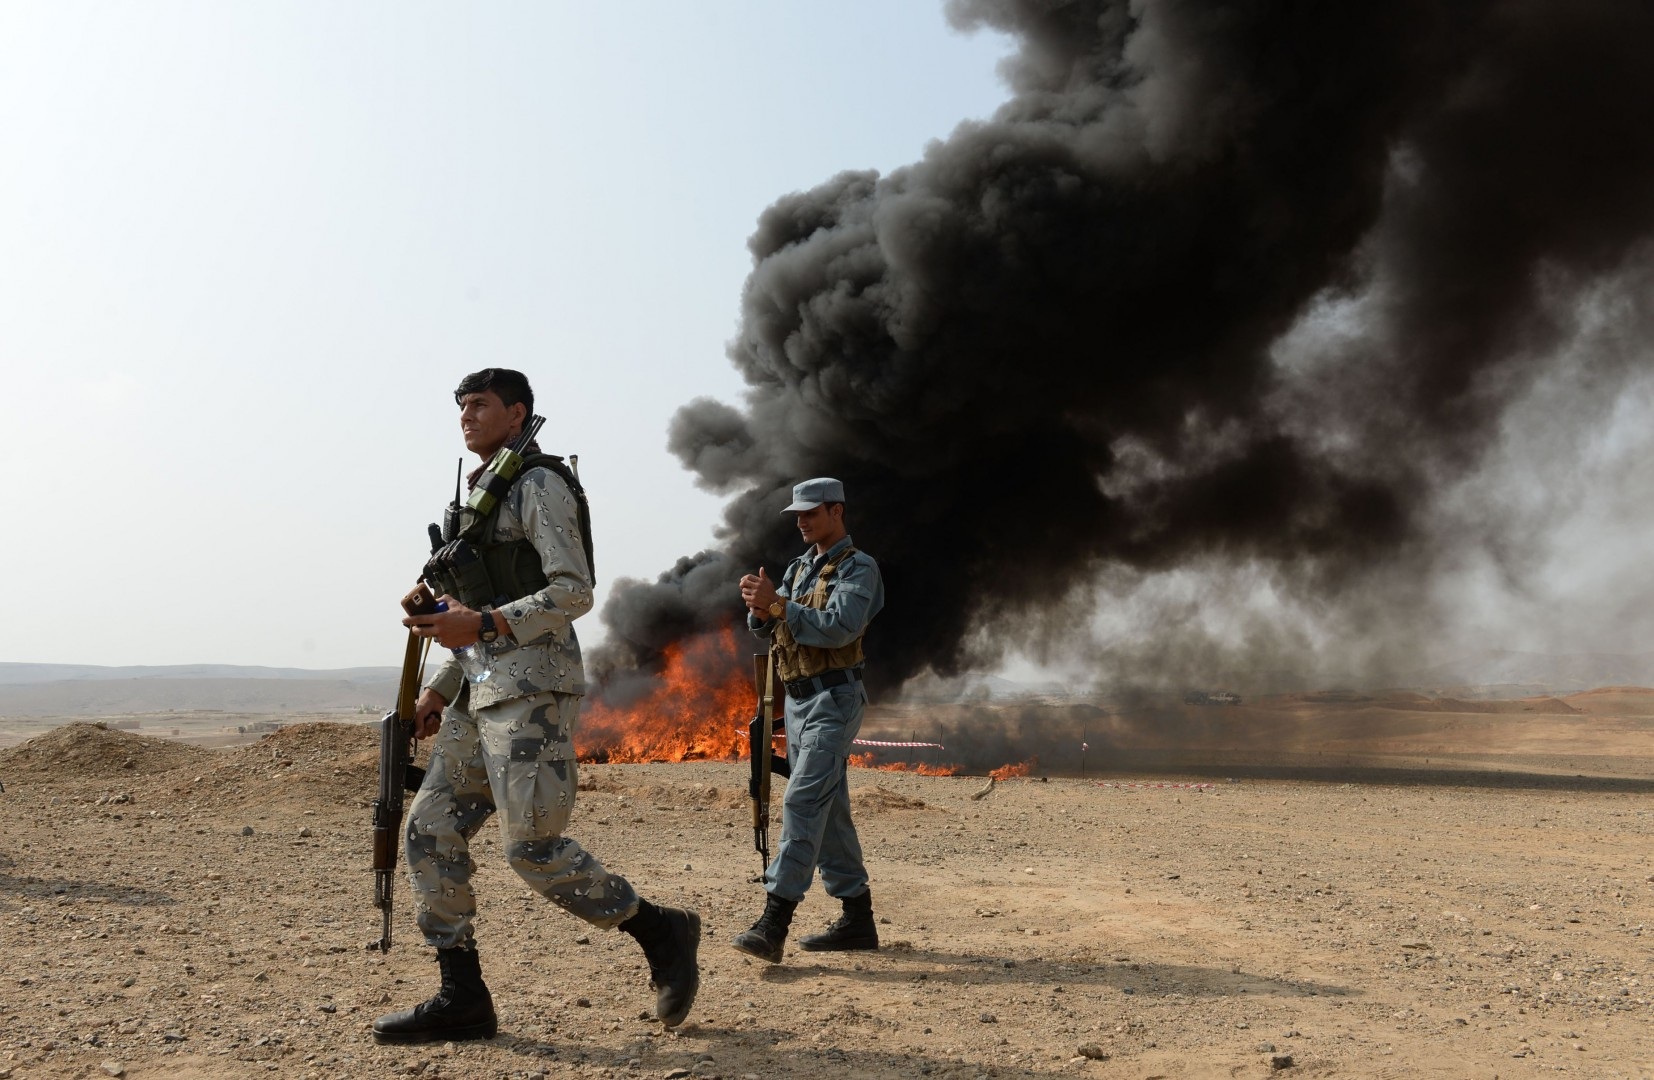 Afghan security forces walk near a pile of burning drugs and alcohol on the outskirts of Jalalabad on September 24, 2018. - Afghan authorities burned around 20 tons of narcotics which were seized during operations in Nangarhar province, officials said. (Photo by NOORULLAH SHIRZADA / AFP)